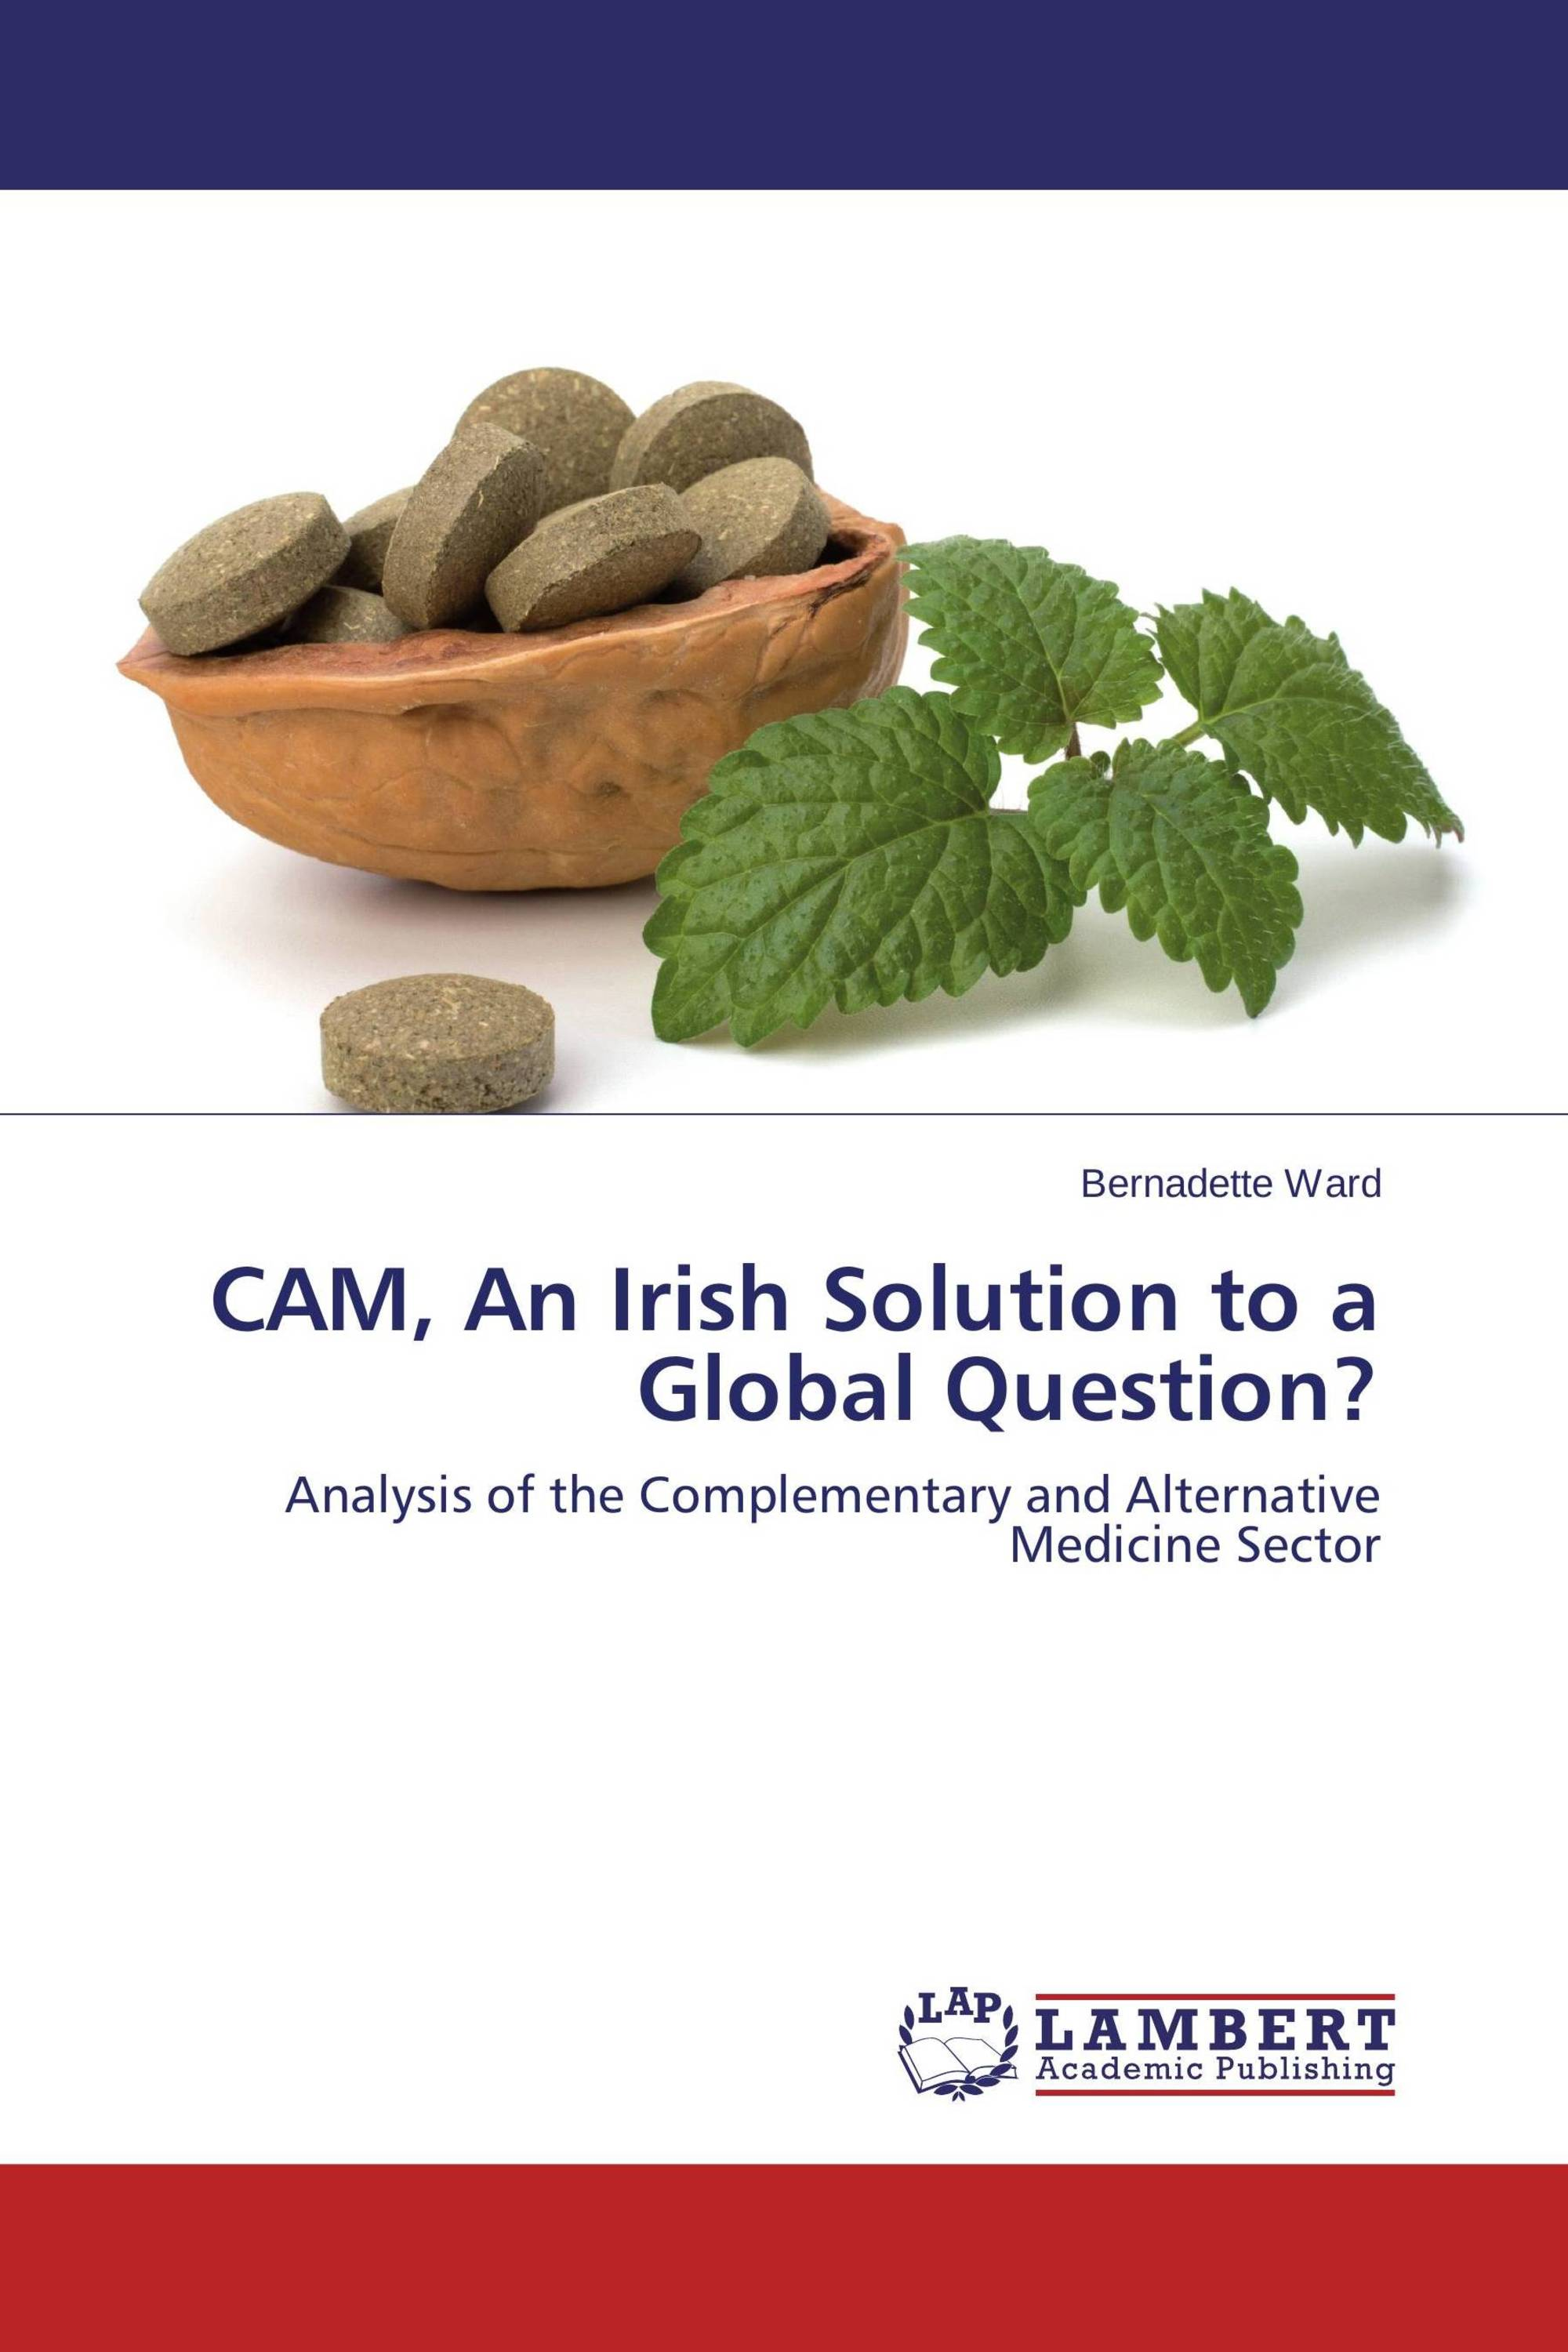 CAM, An Irish Solution to a Global Question?